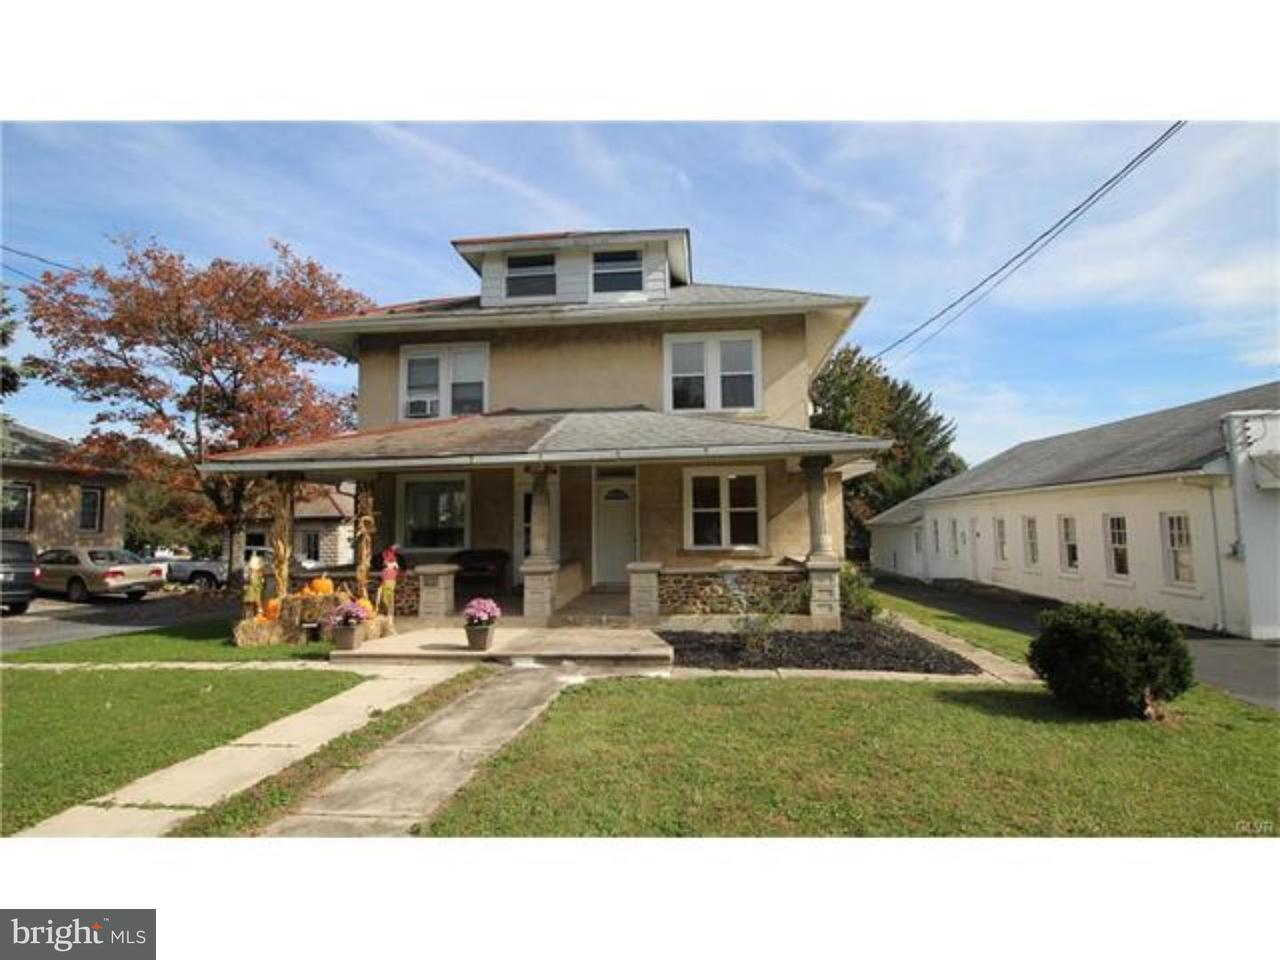 Townhouse for Sale at 5751 PA ROUTE 873 Schnecksville, Pennsylvania 18065 United States